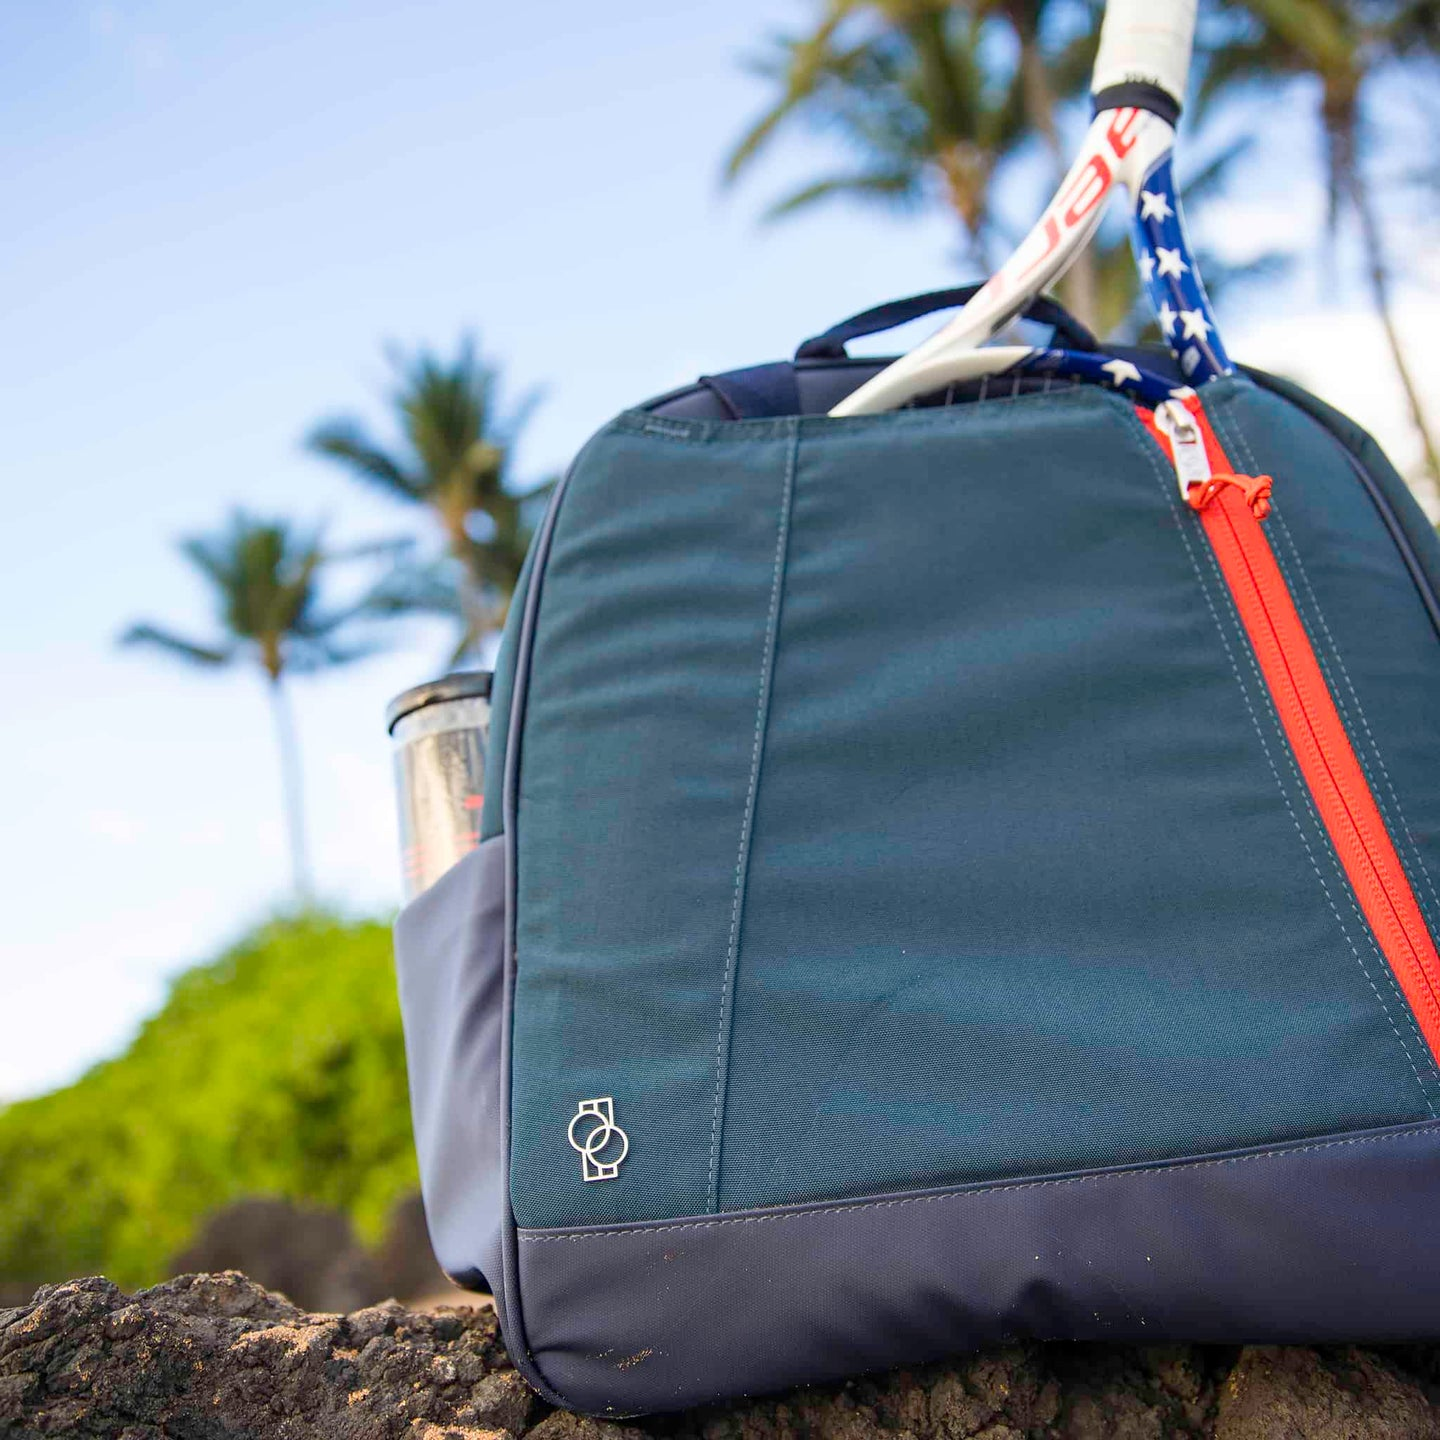 Doubletake tennis bag and tote blue and persimmon in Hawaii